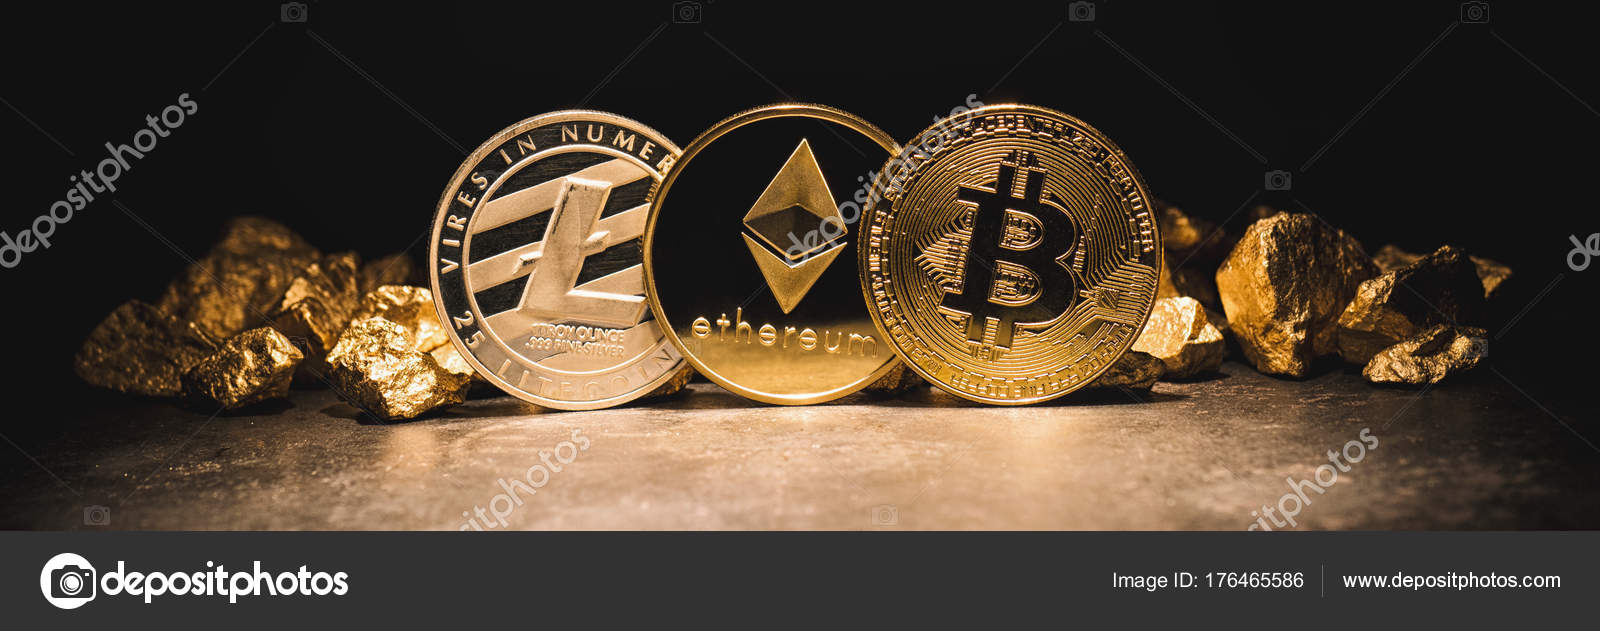 litecoin cryptocurrency bitcoin